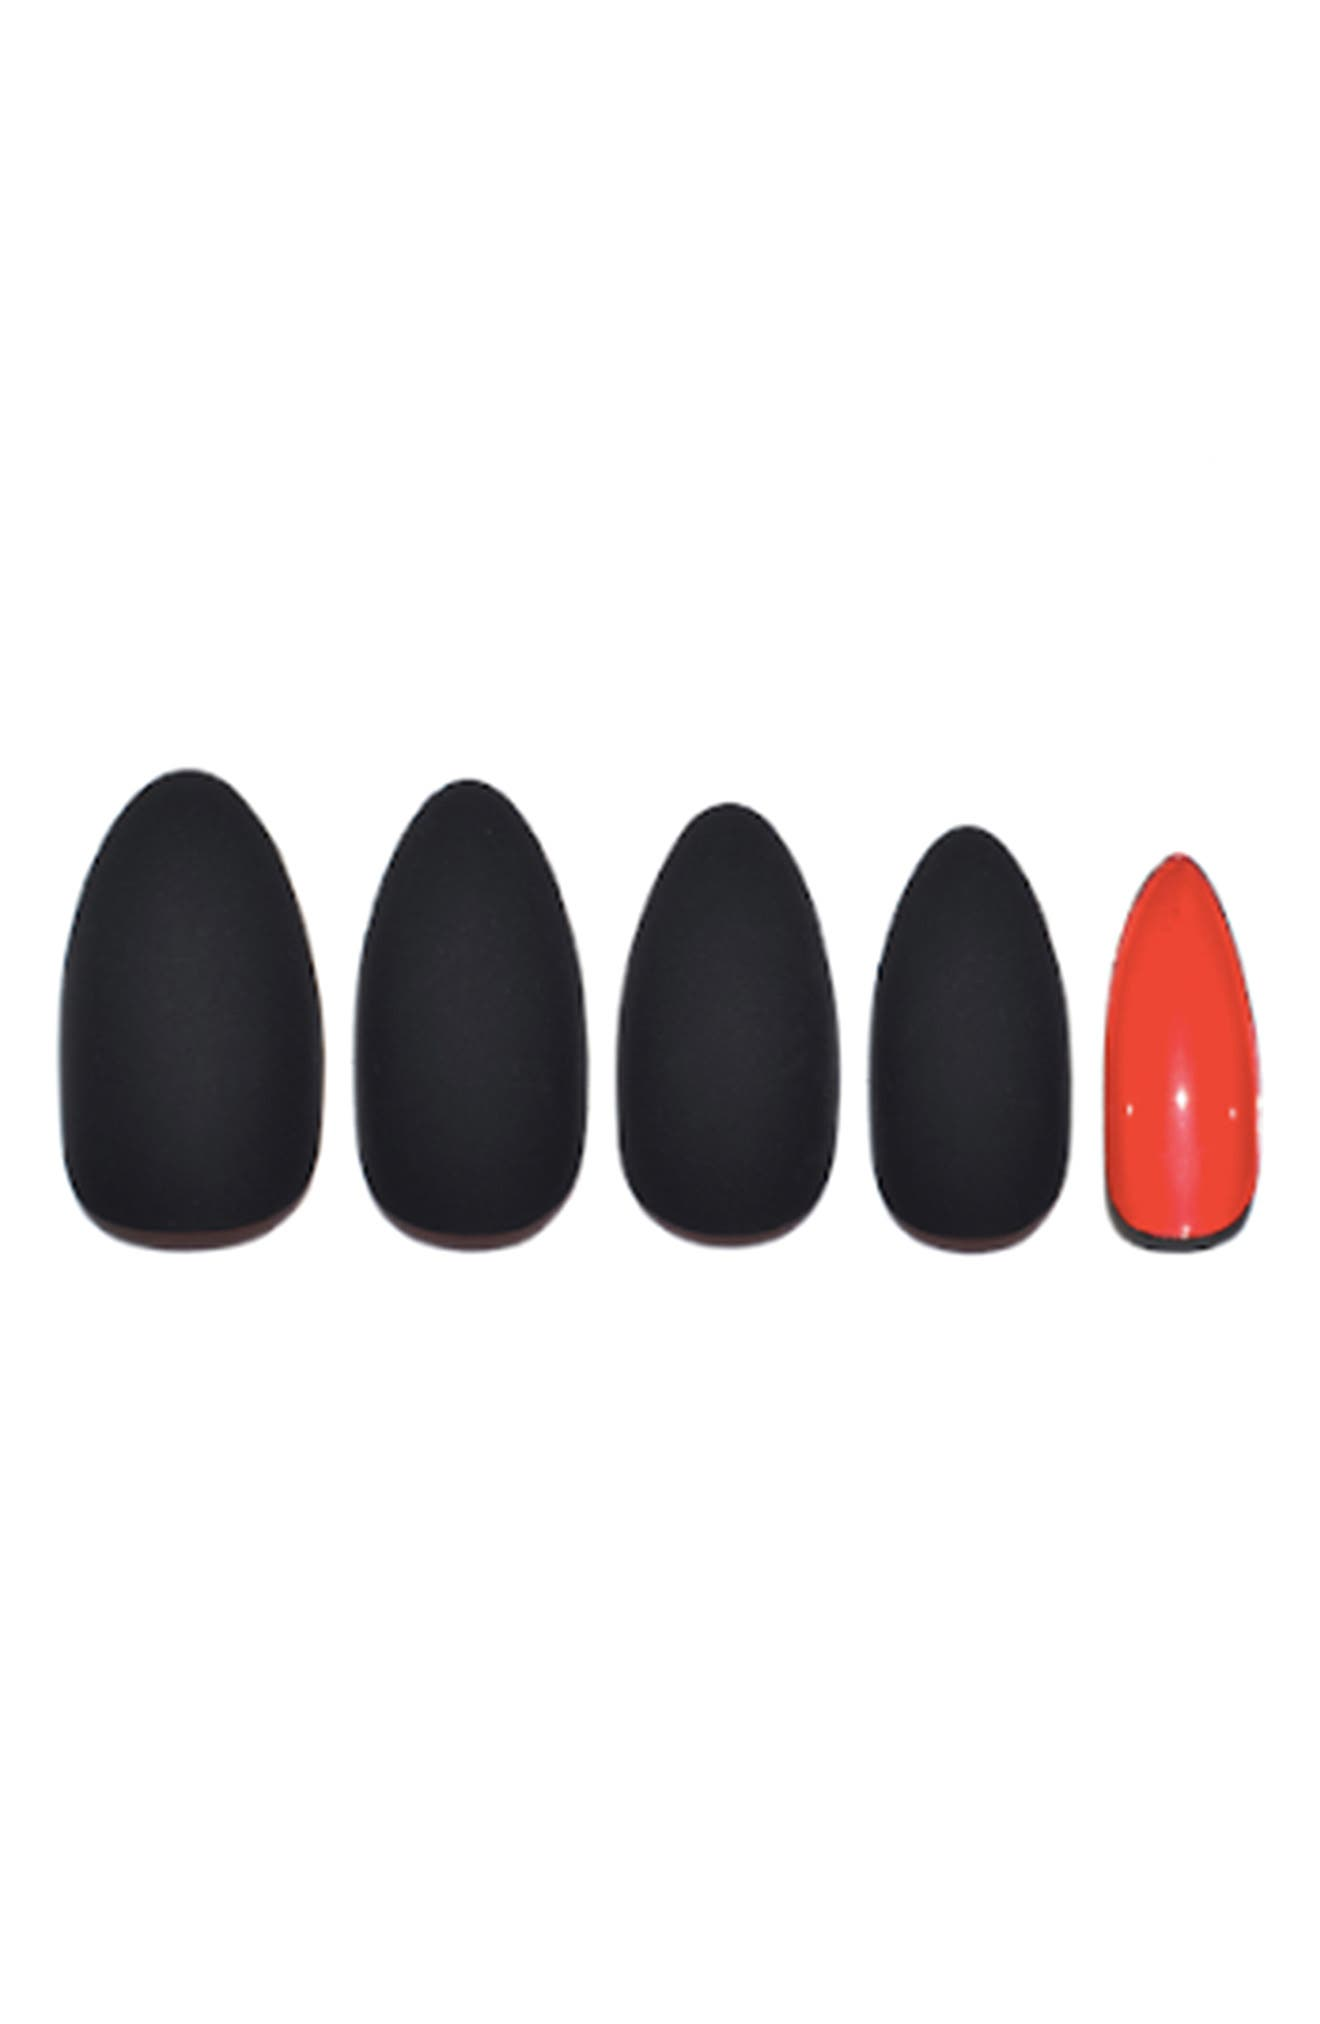 Caviar Matte Caviar Pop-On Manicure Set,                             Main thumbnail 1, color,                             CAVIAR